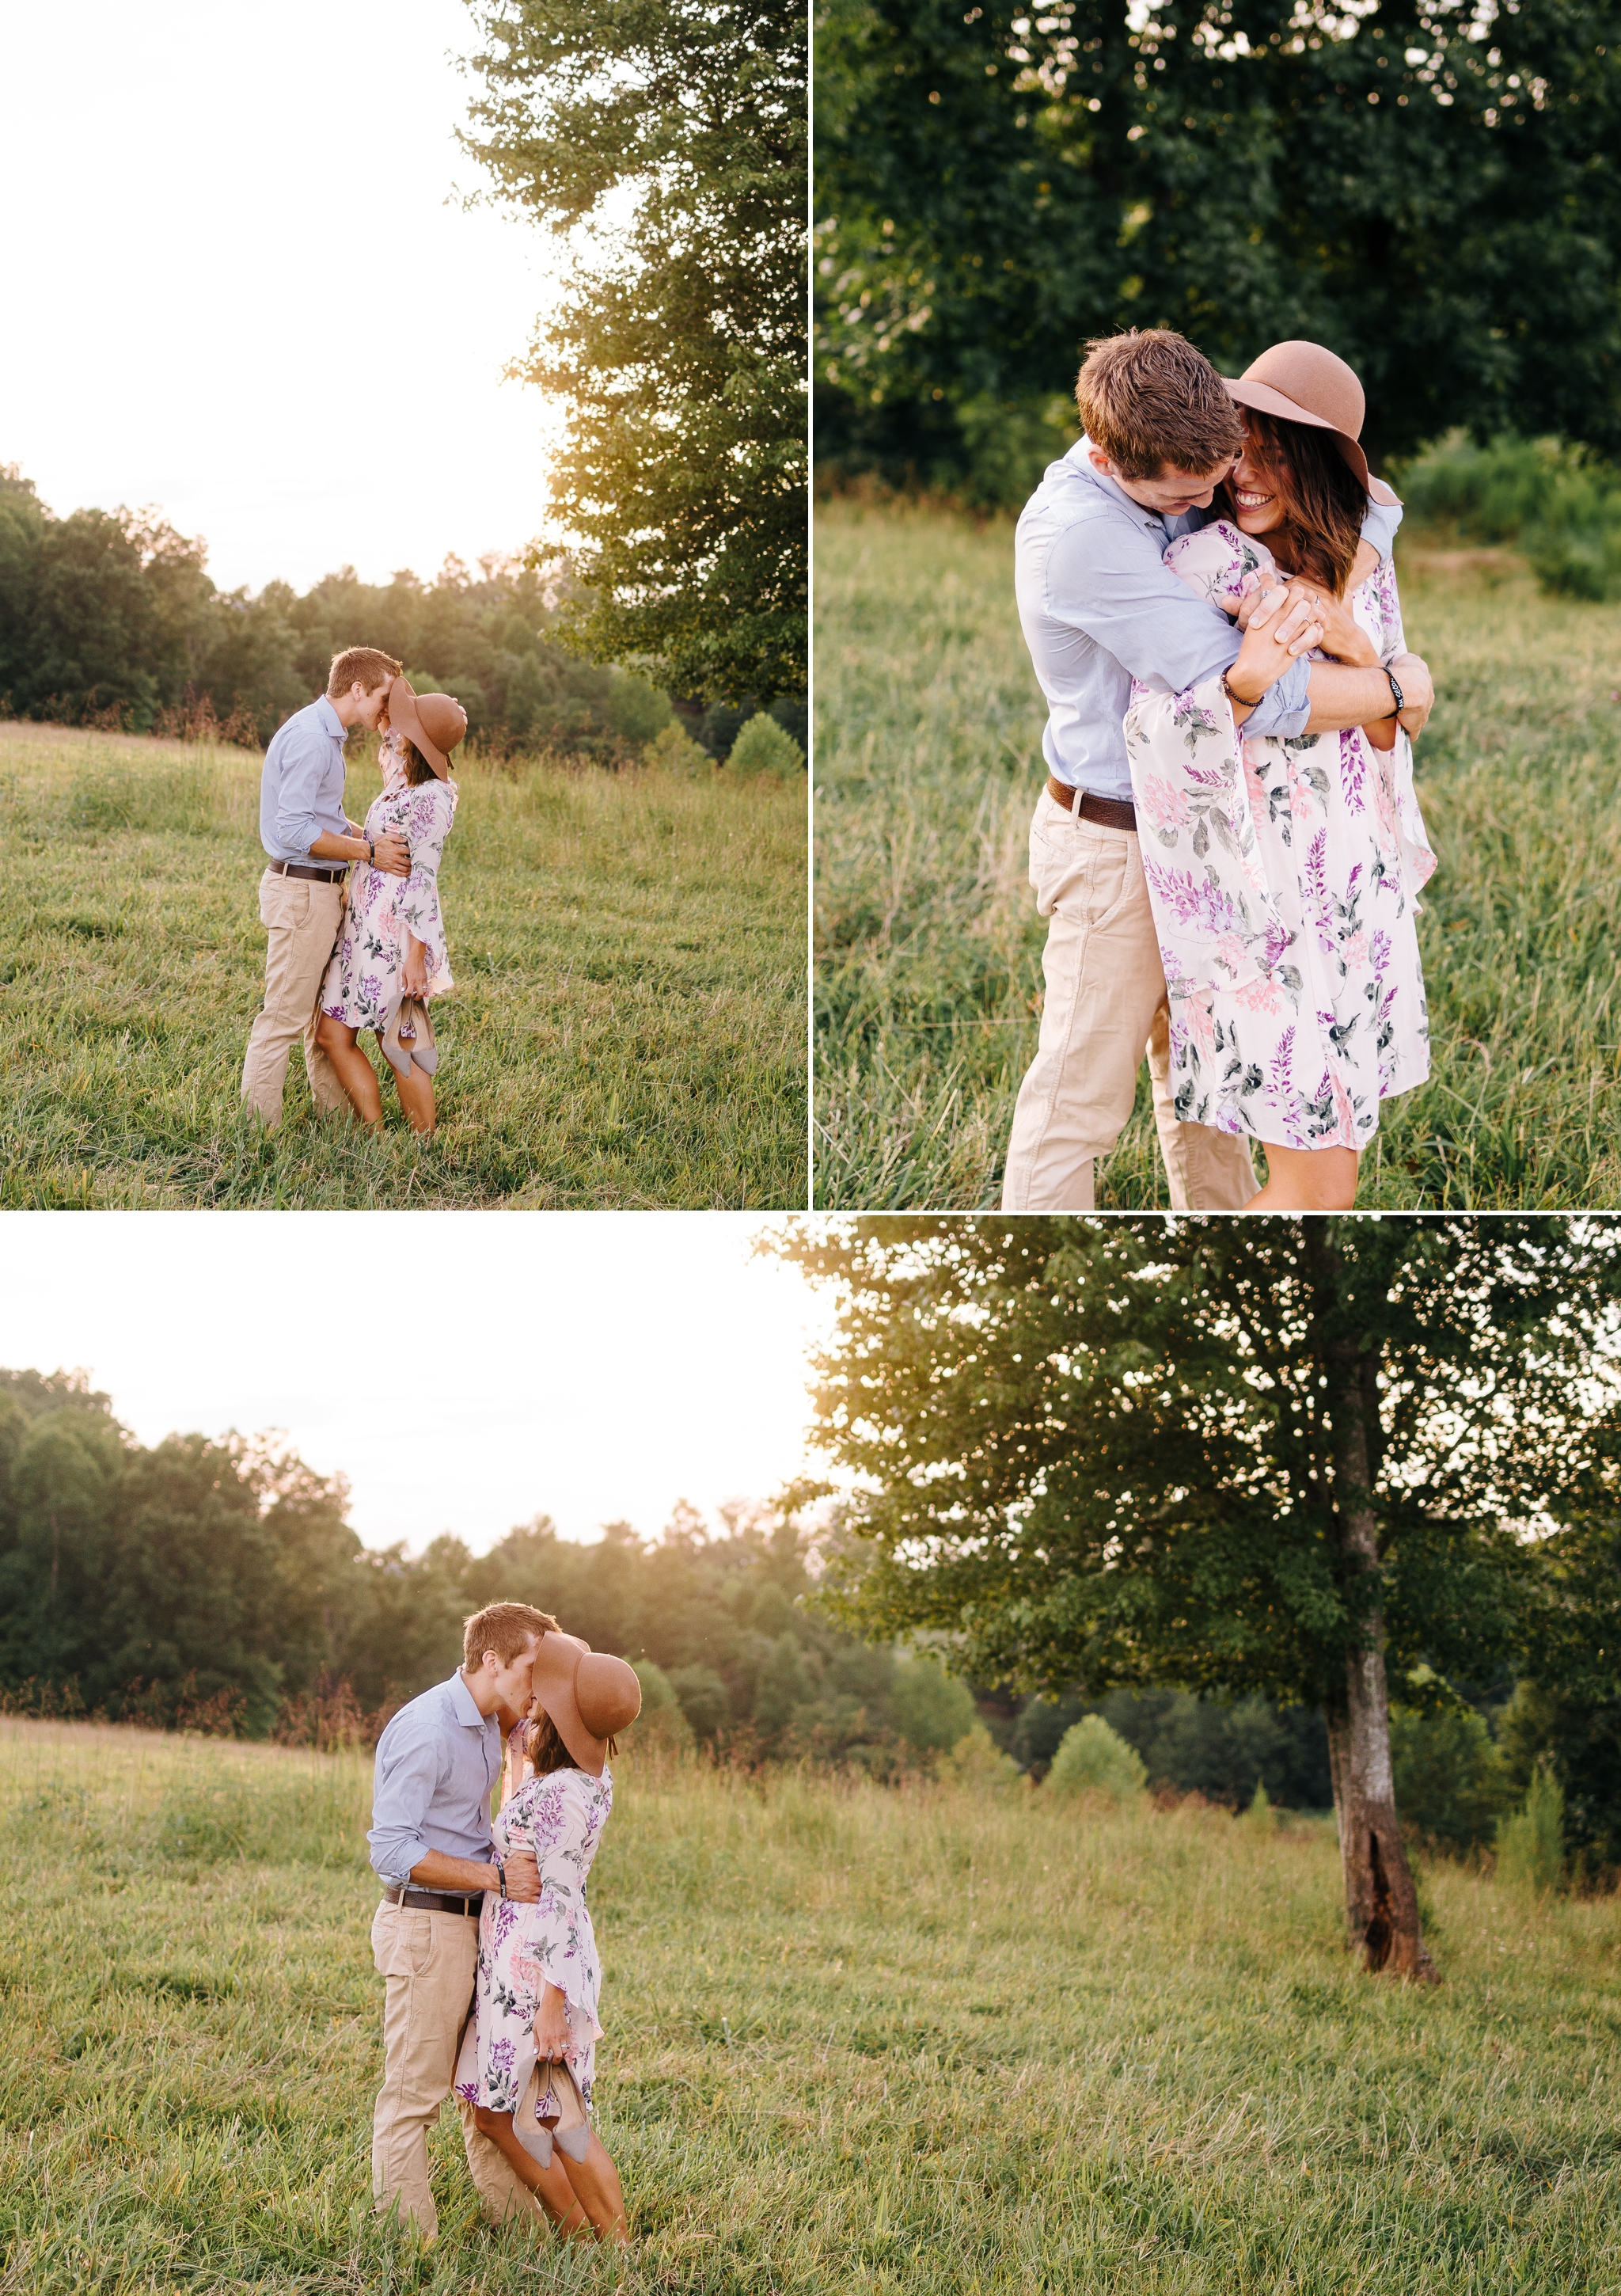 Husband_and_wife_standing_in_field_in_virginia_by_Jonathan_and_Hannah_photography